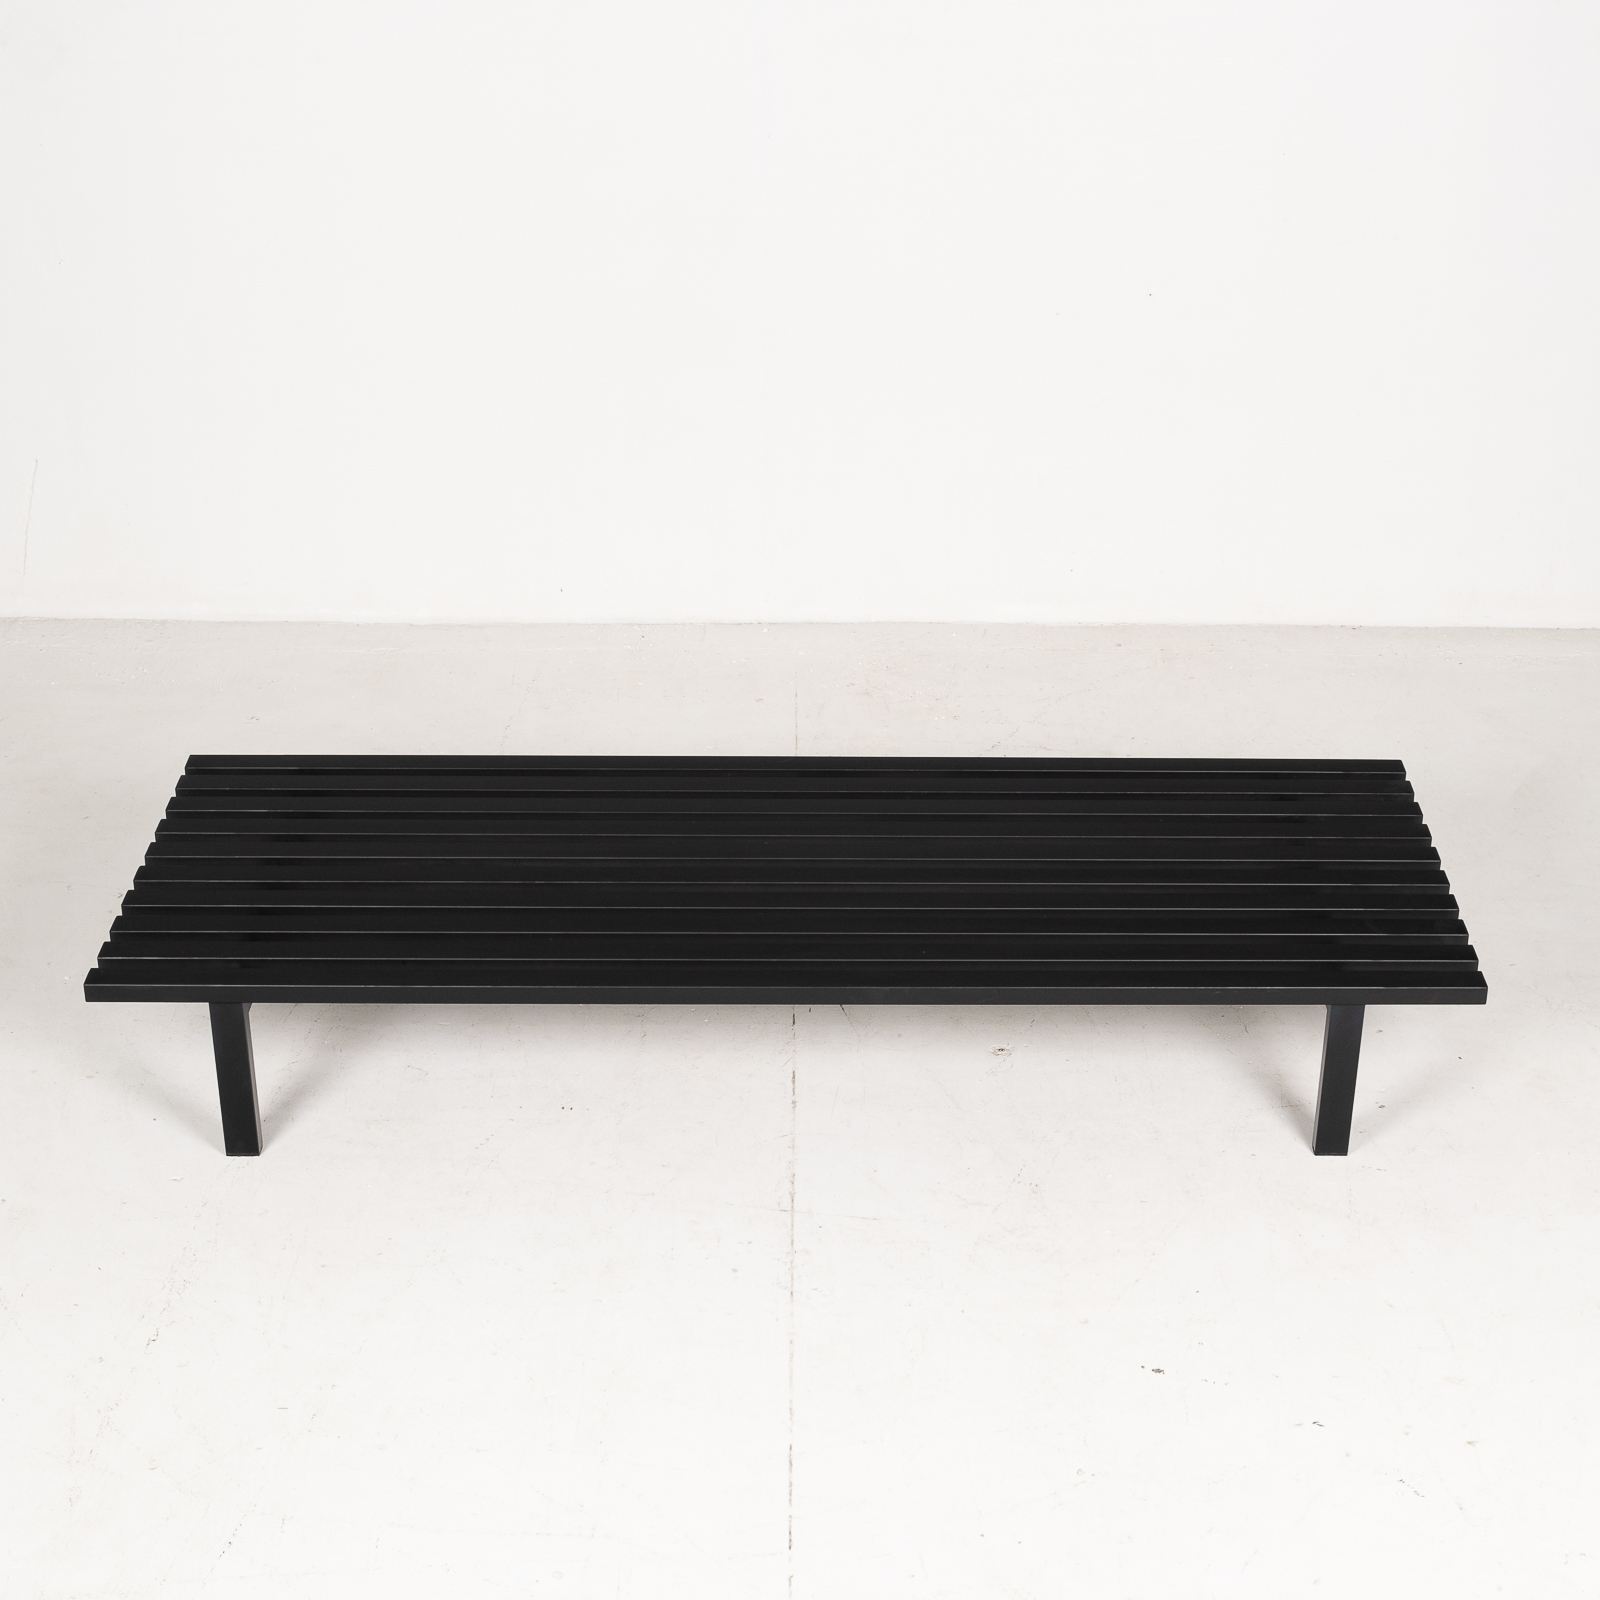 Model Bz82 Slatted Bench By Martin Visser For 't Spectrum, 1960s, The Netherlands6